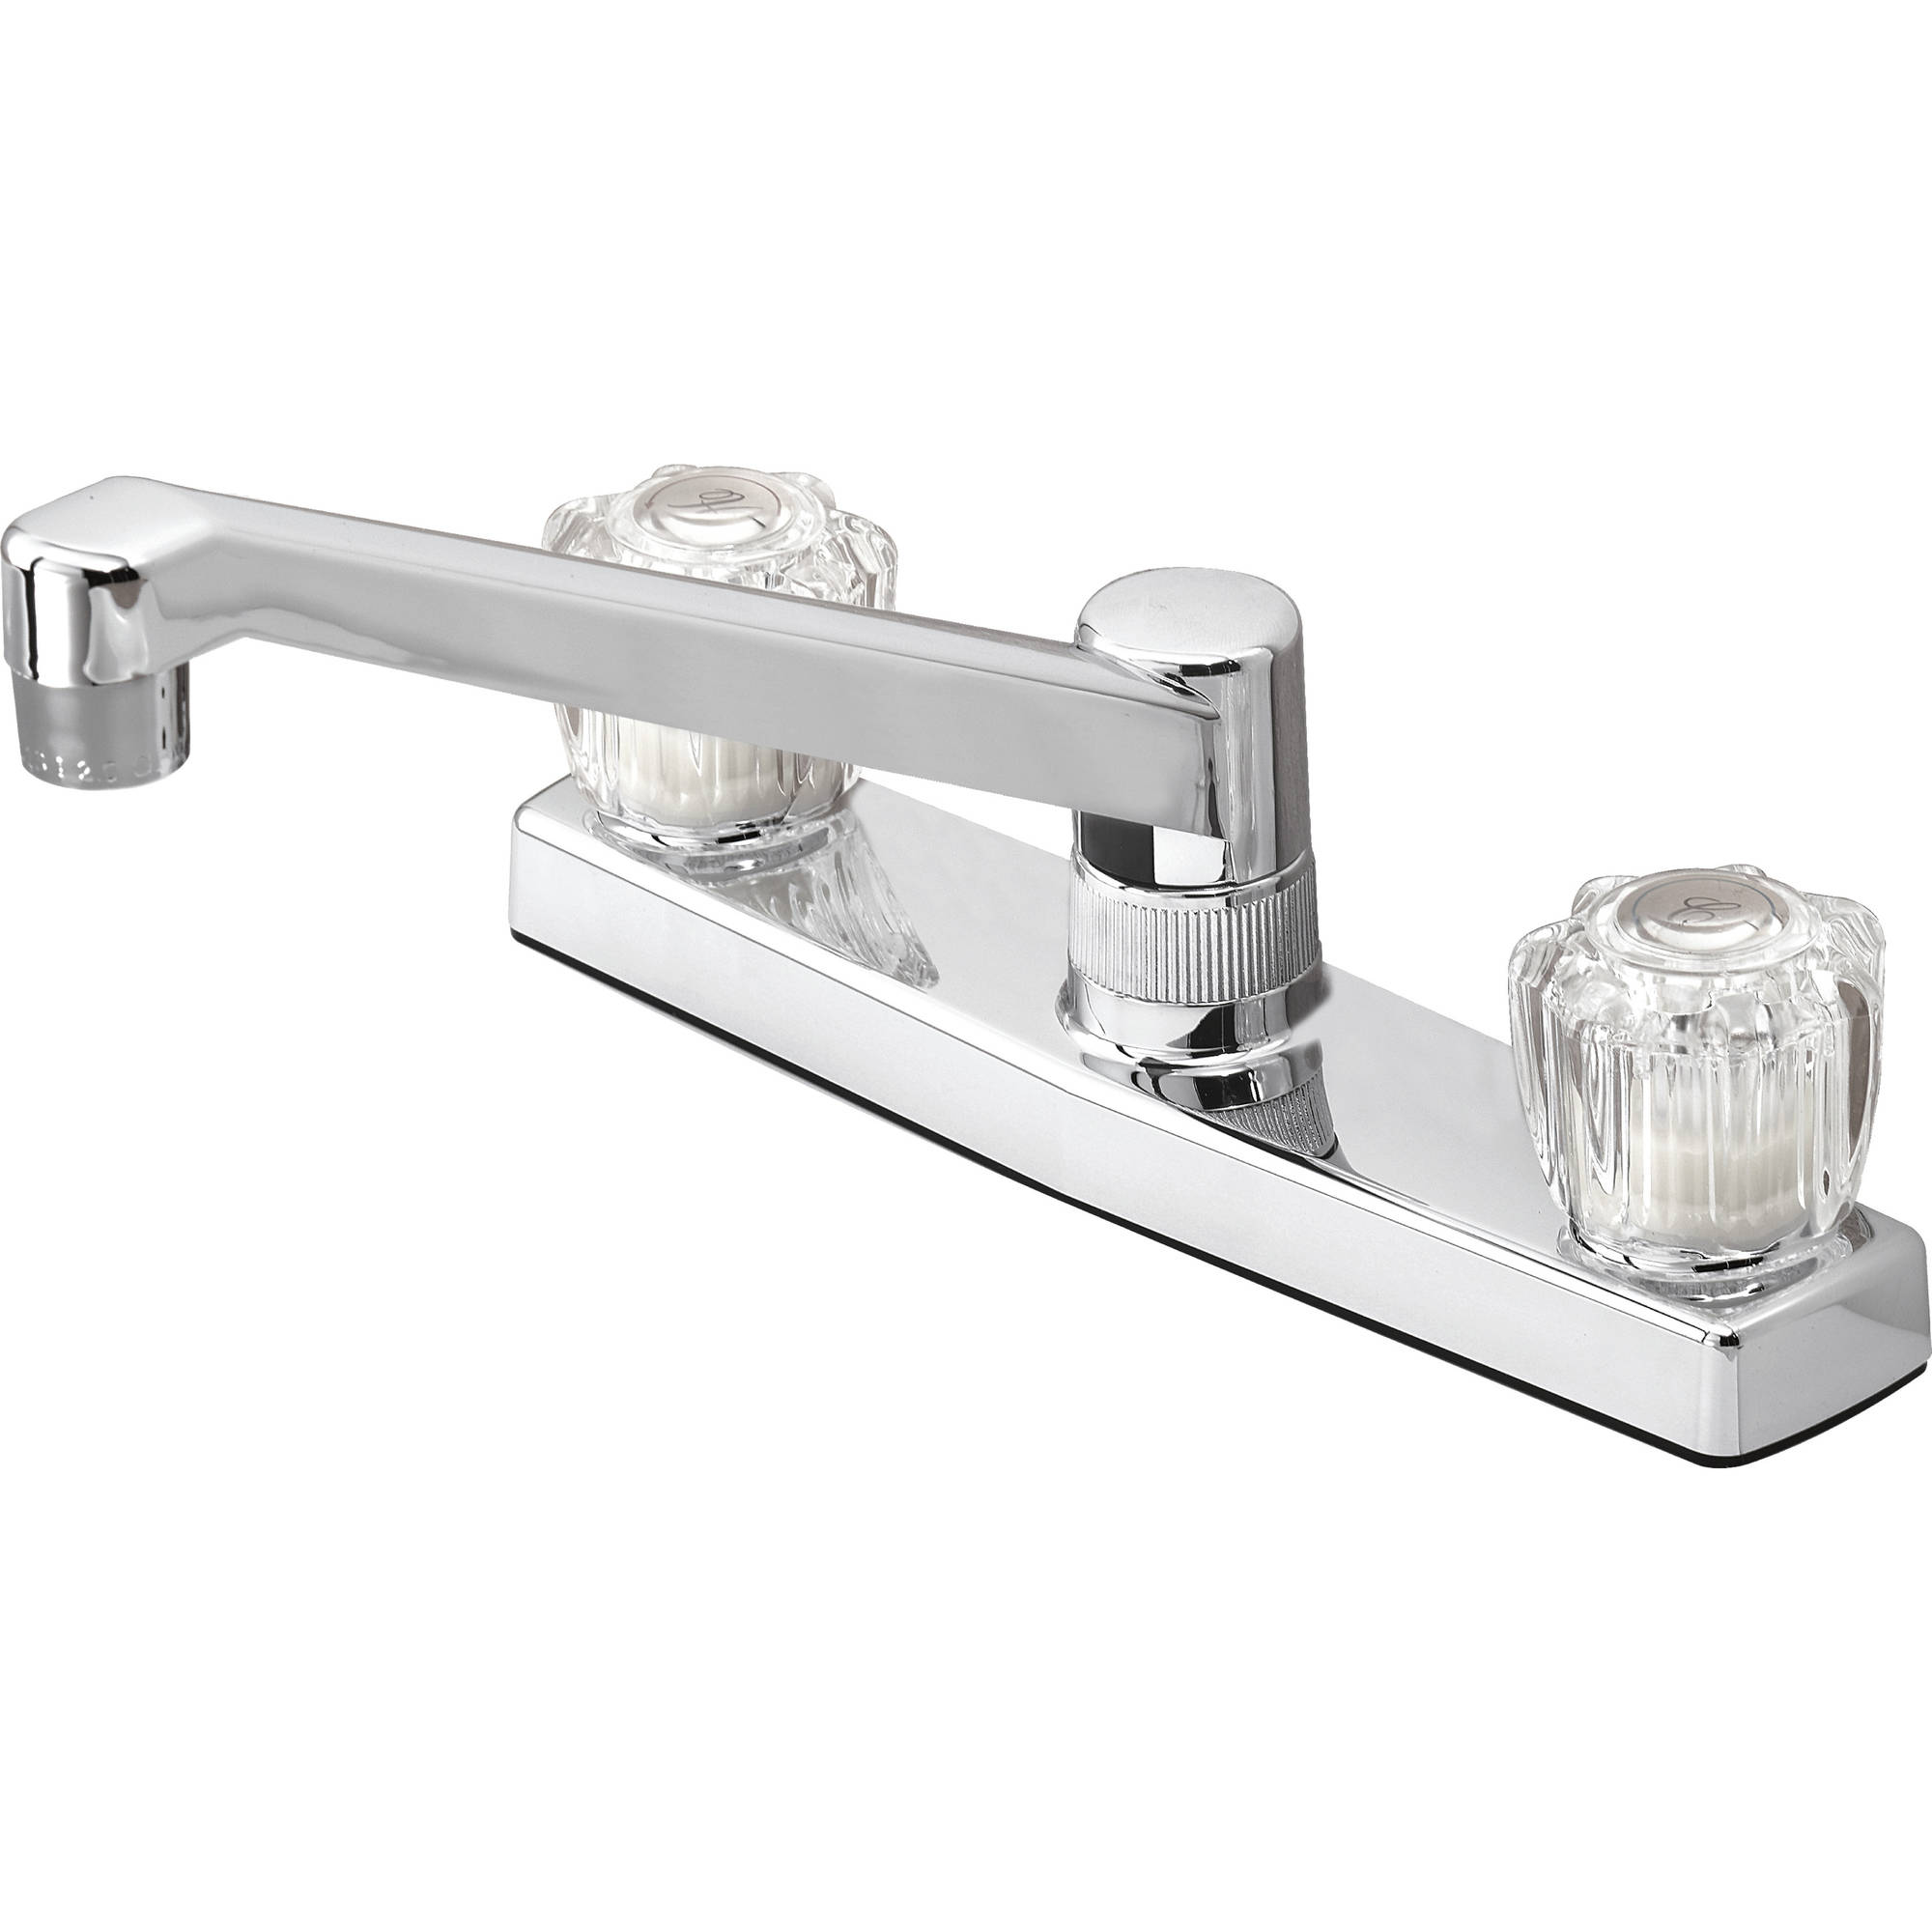 two handle kitchen faucet peerless two handle kitchen faucet in chrome psf0118 walmart com 7104